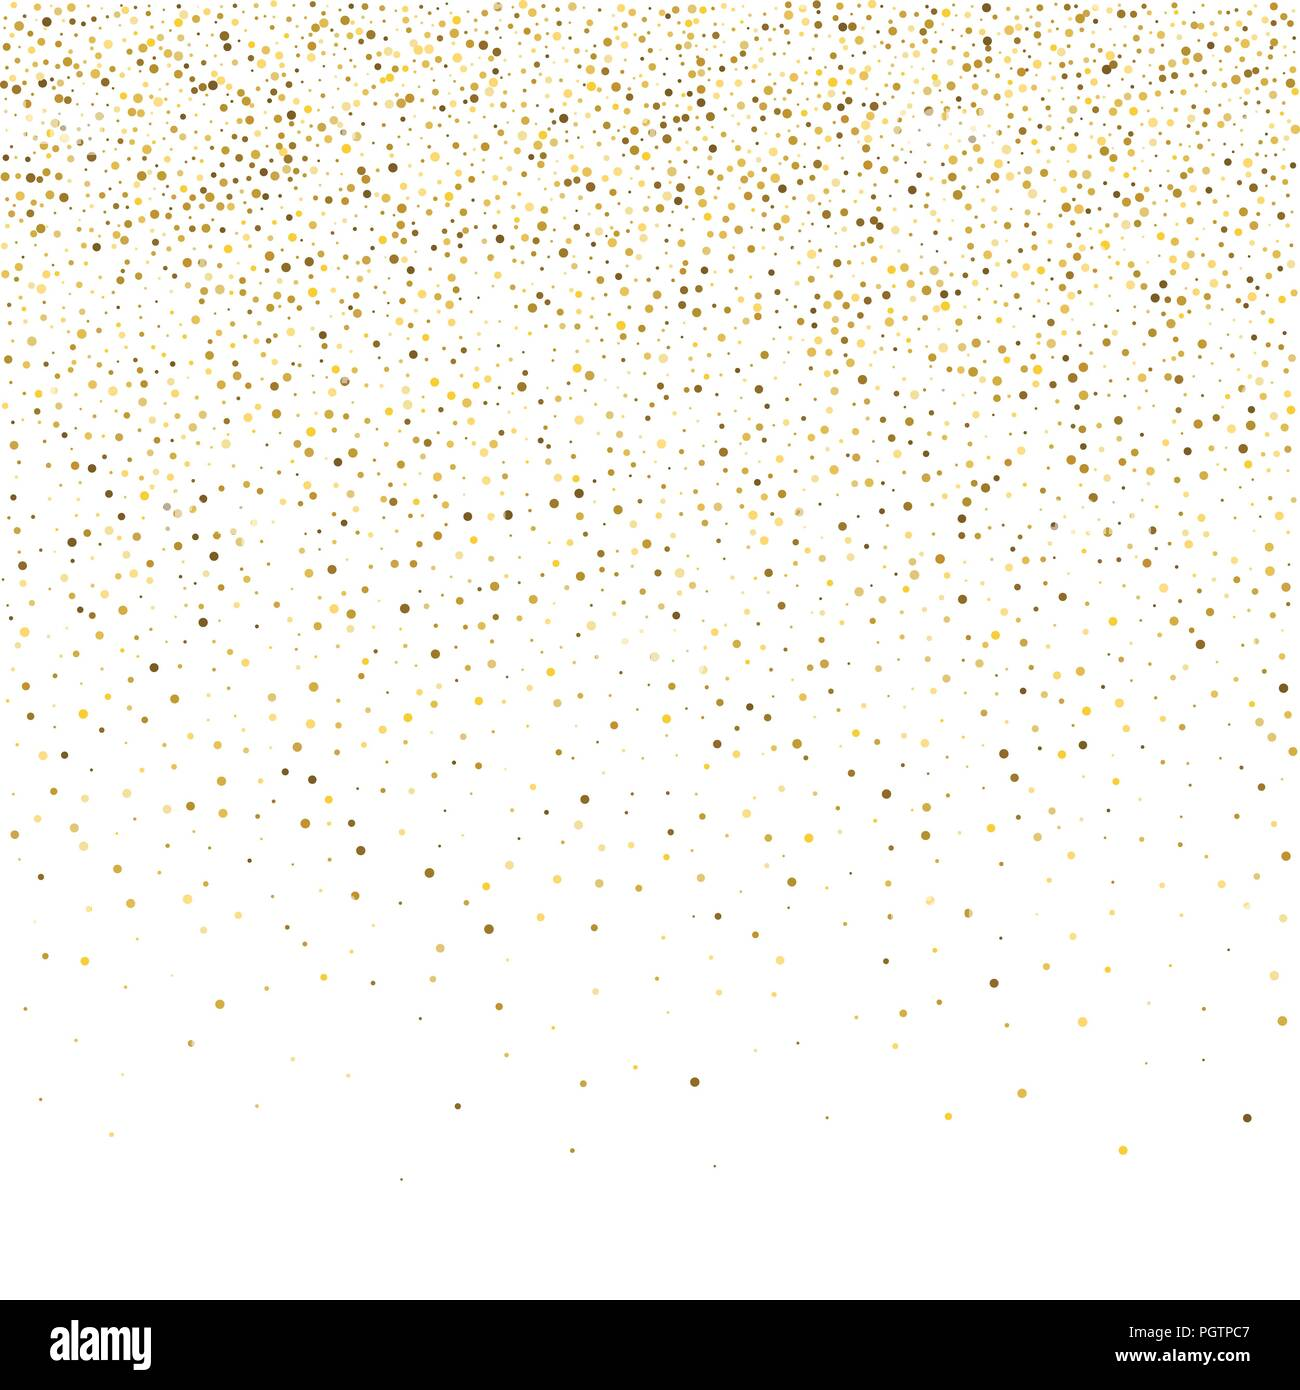 vector glitter background cute small falling golden dots sparkle background glitter sparkle confetti texture new year celebration invitation card